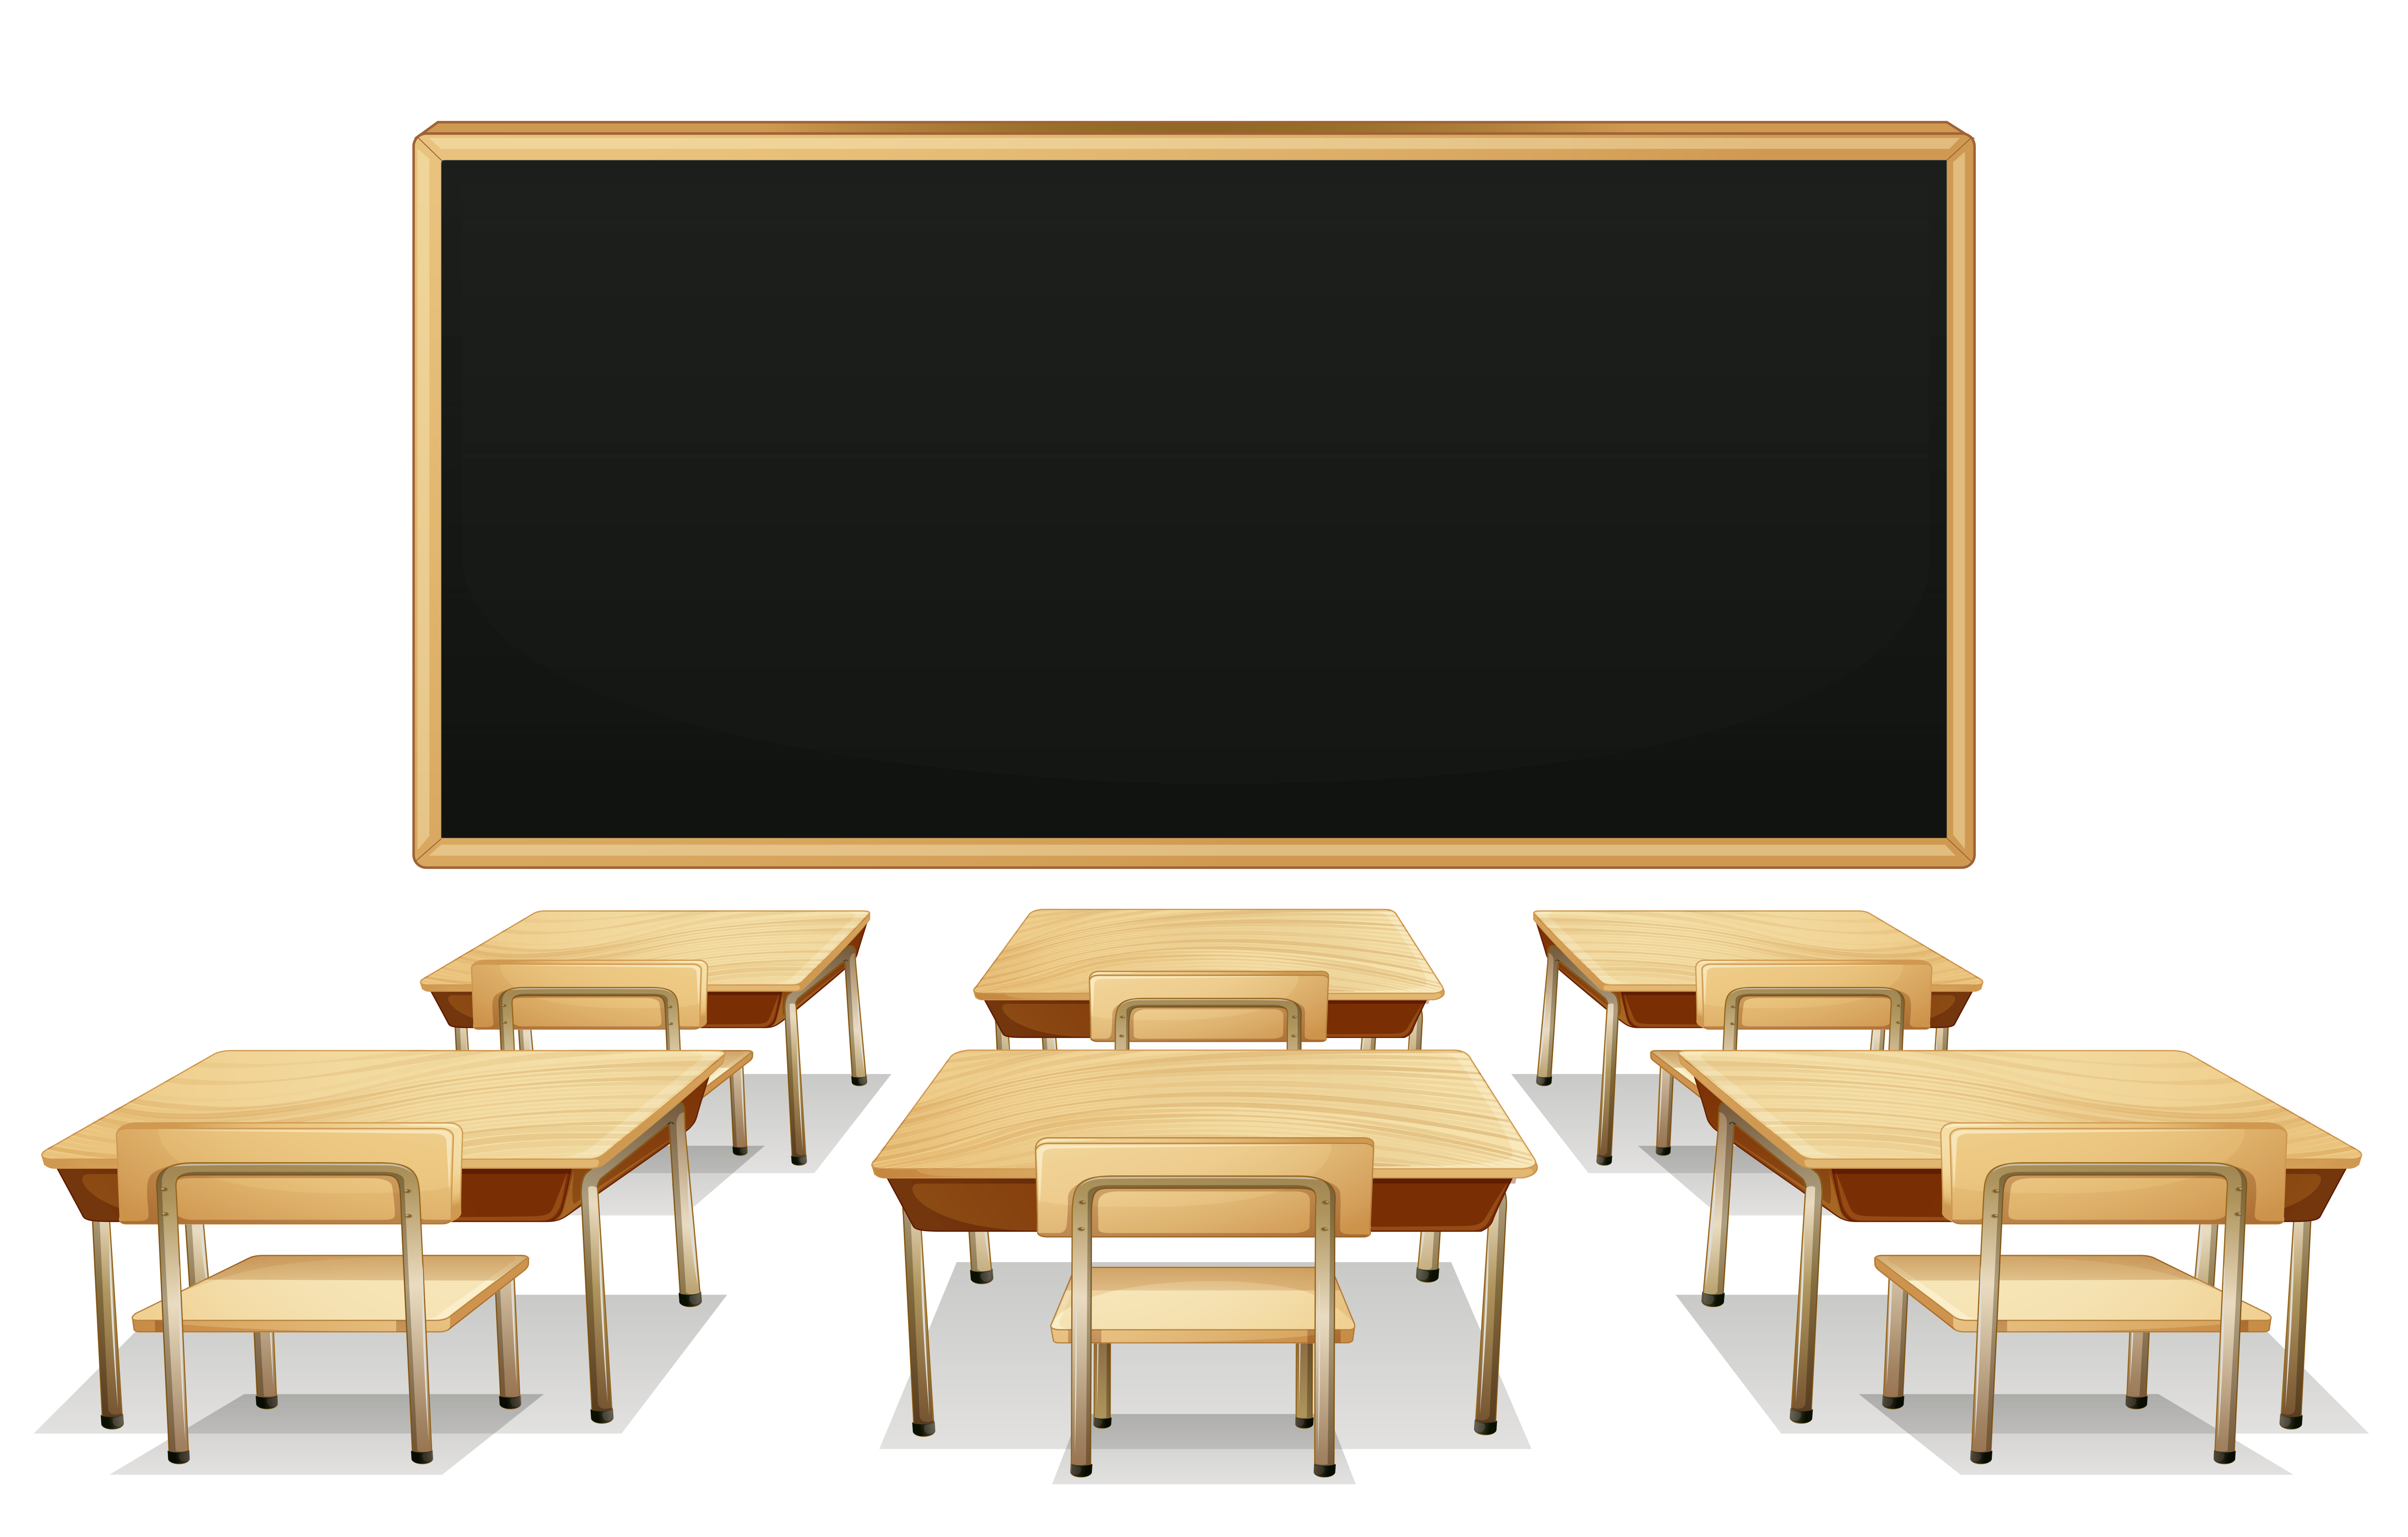 School room clipart svg transparent download 28+ Collection of School Rooms Clipart | High quality, free cliparts ... svg transparent download